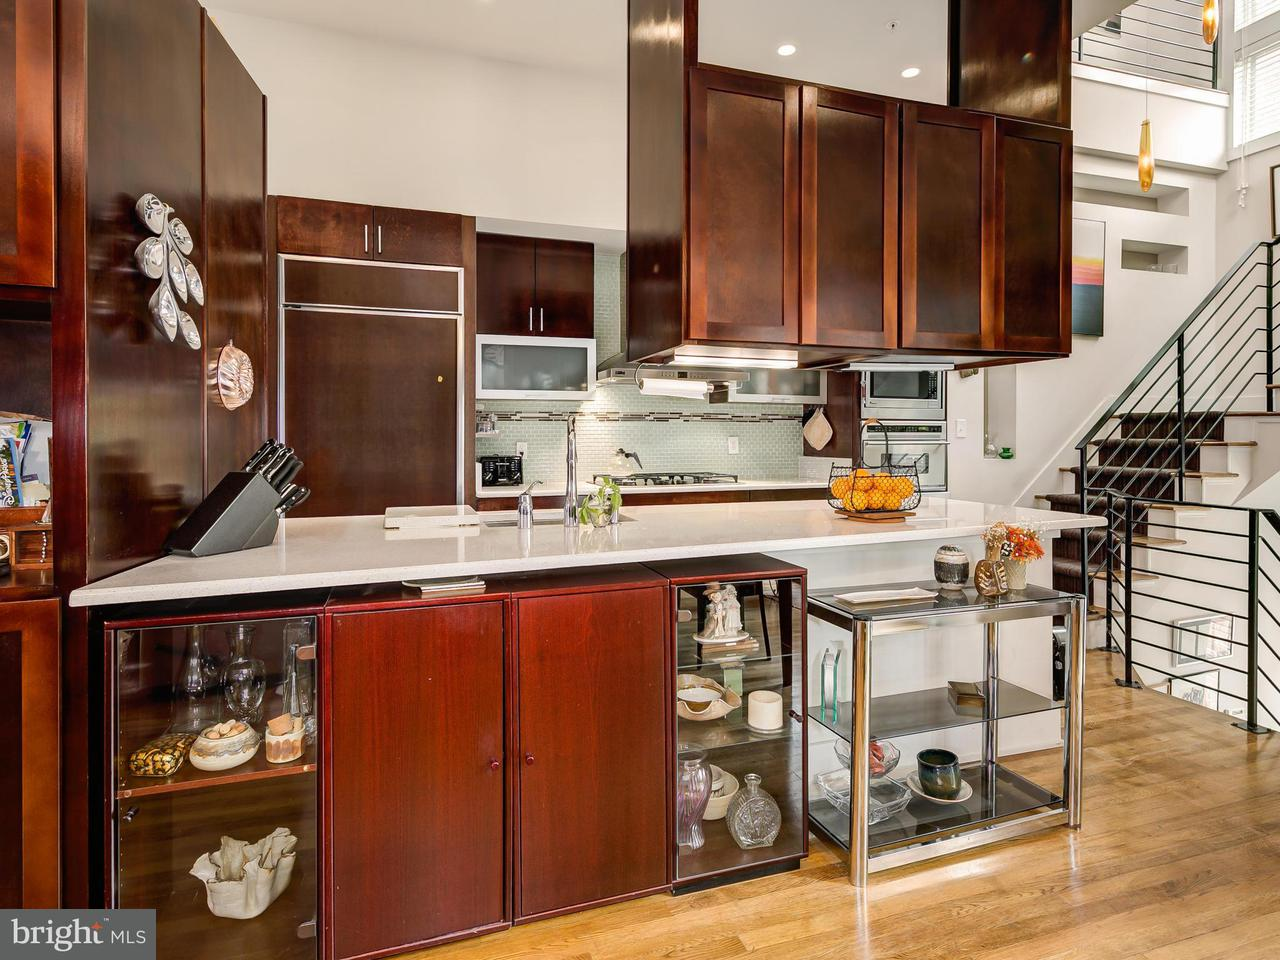 Additional photo for property listing at 1217 10th St Nw #C 1217 10th St Nw #C 华盛顿市, 哥伦比亚特区 20001 美国